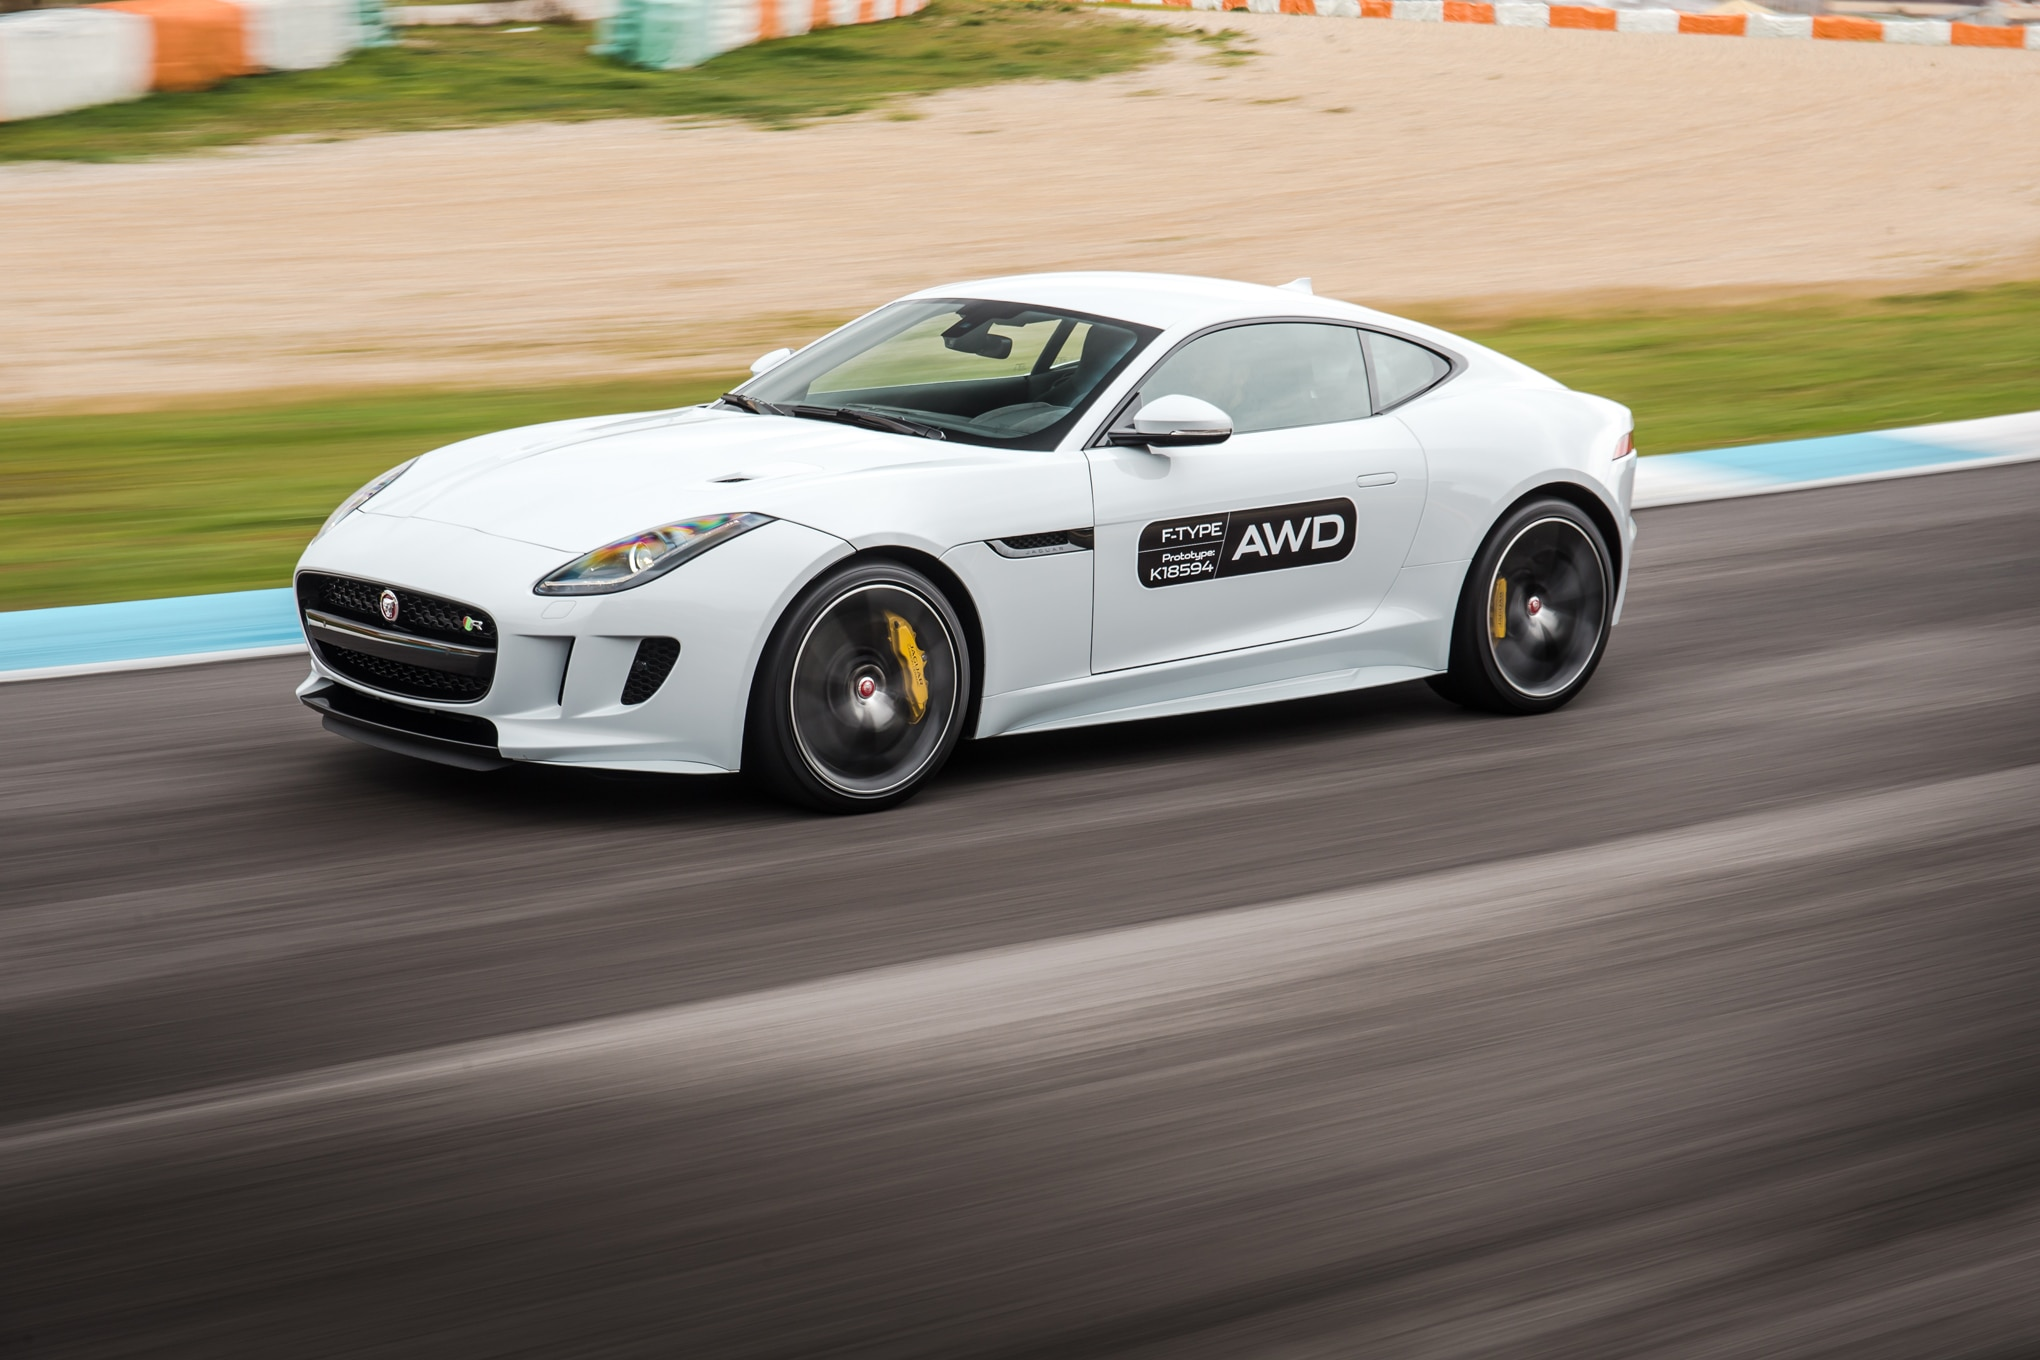 2016 Jaguar F Type R AWD Front Three Quarter In Motion 08